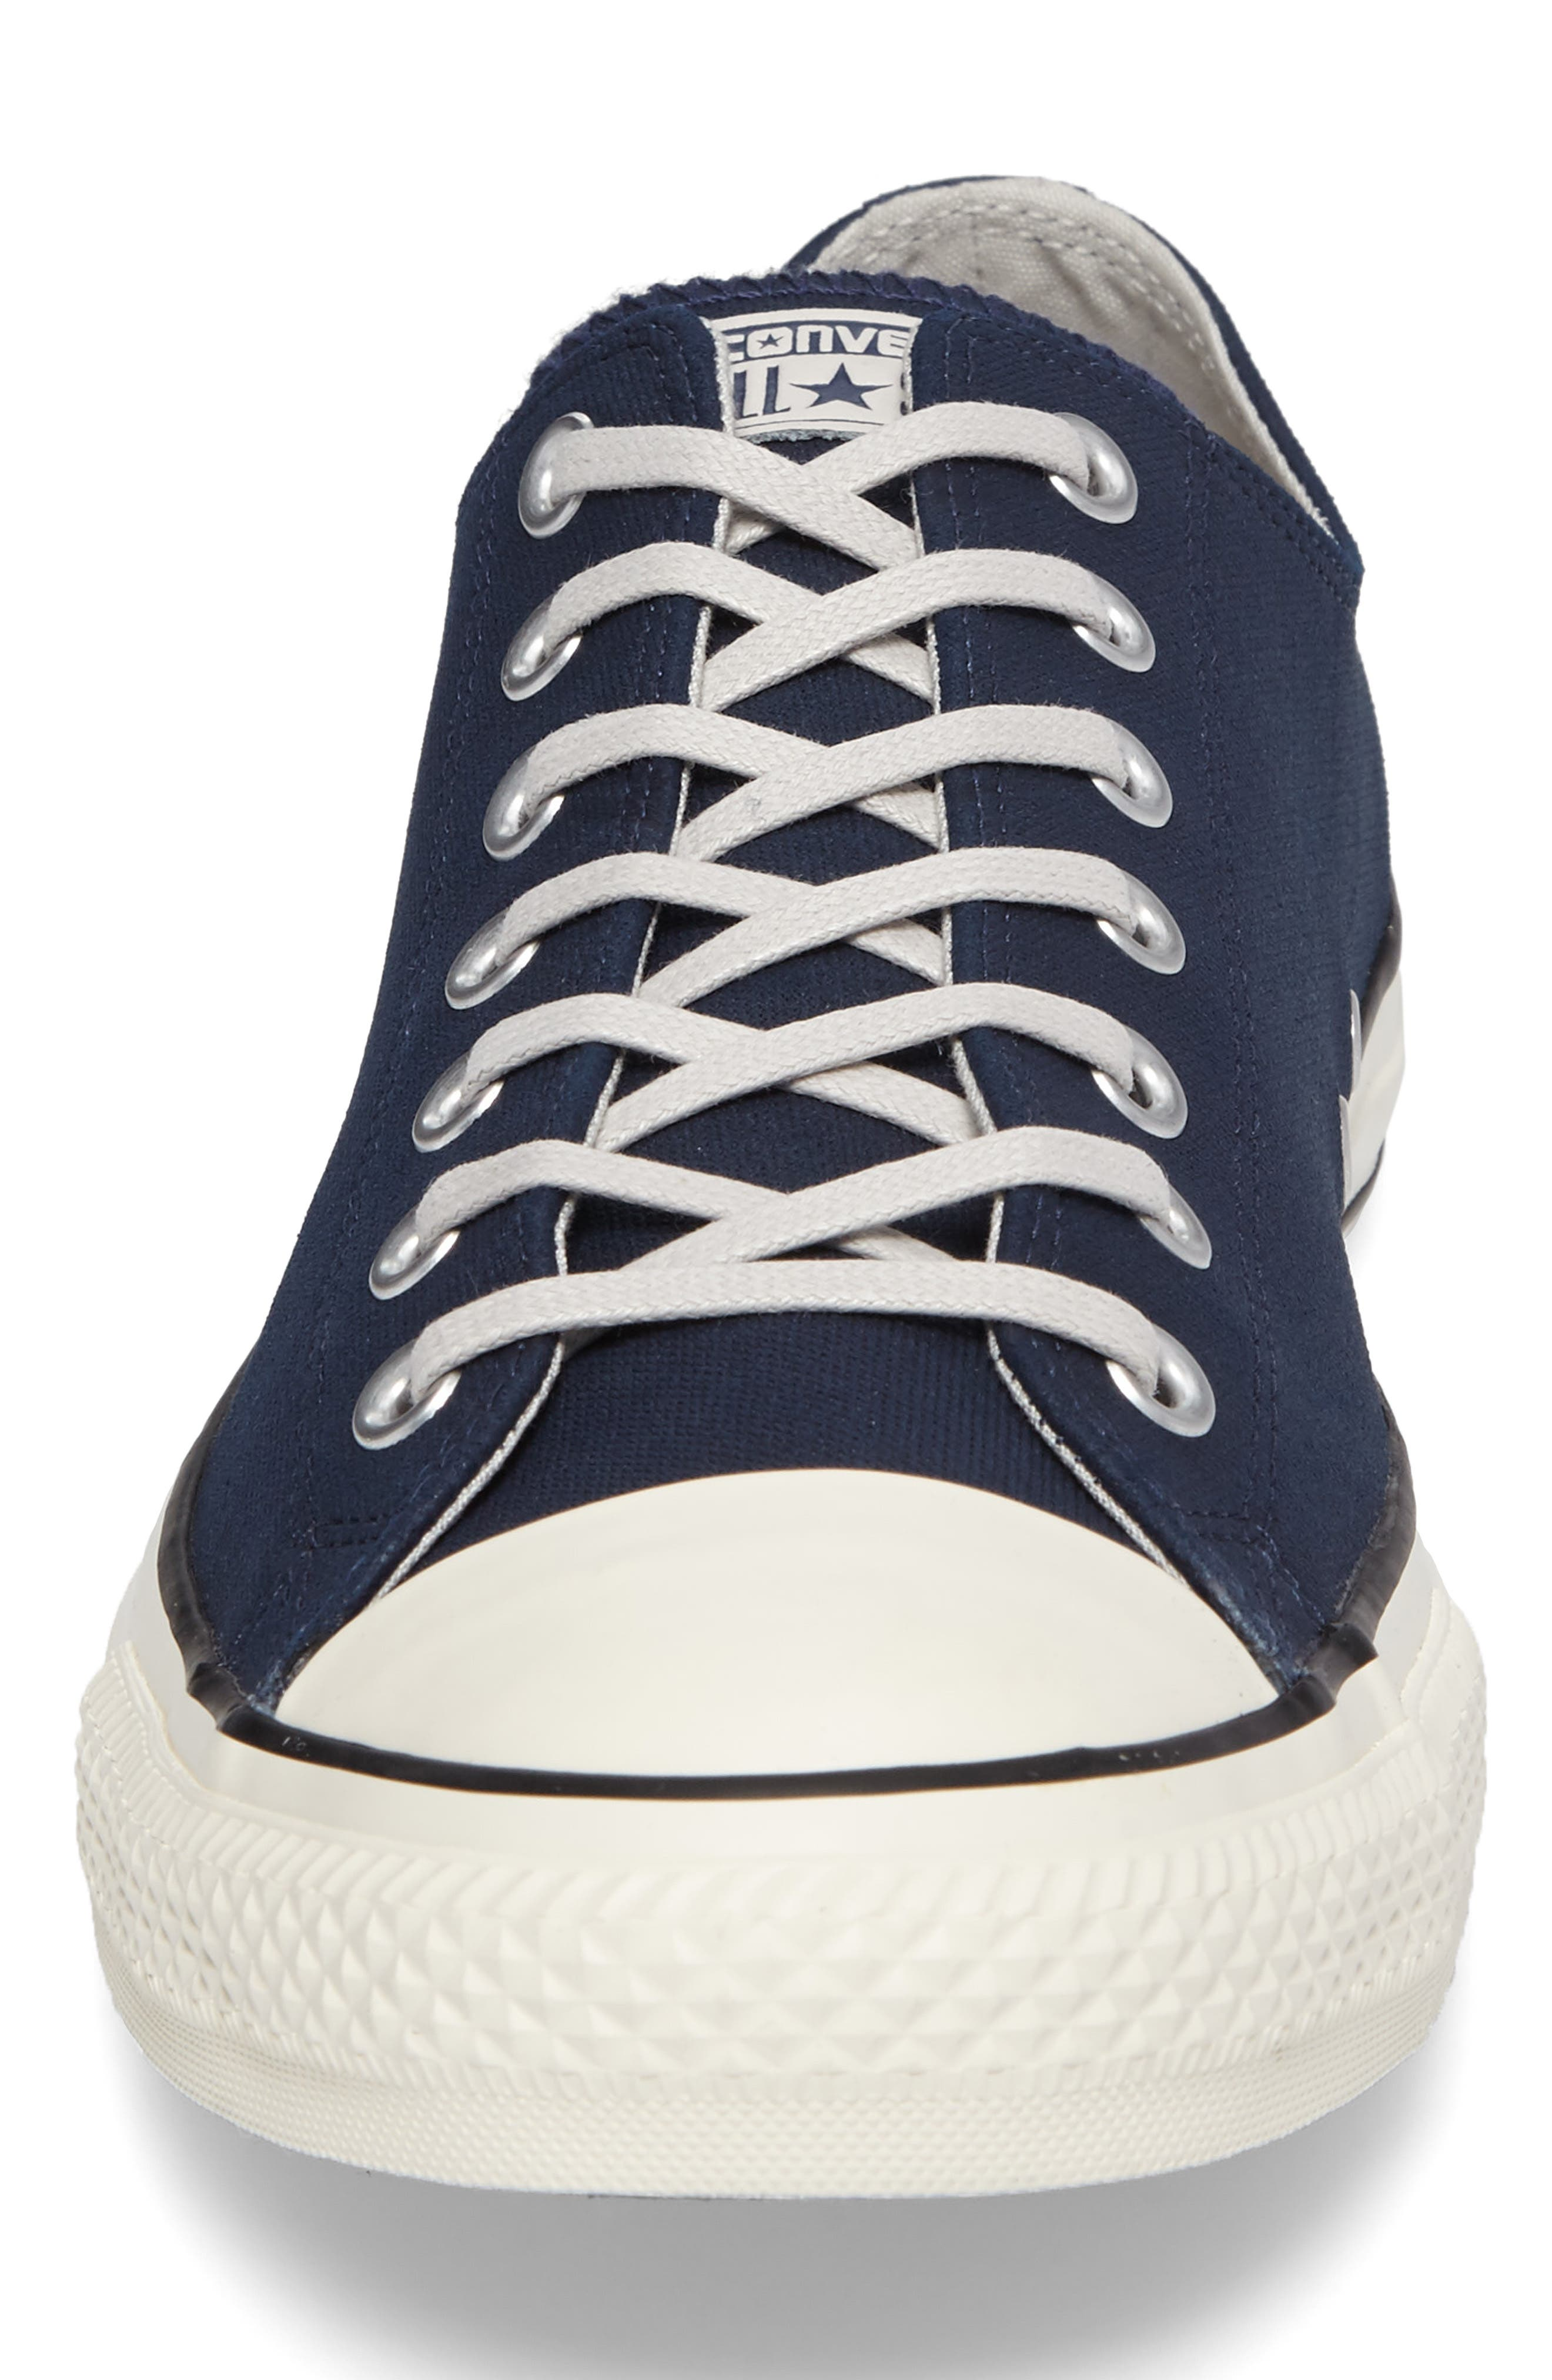 Chuck Taylor<sup>®</sup> All Star<sup>®</sup> Low Top Sneaker,                             Alternate thumbnail 4, color,                             471